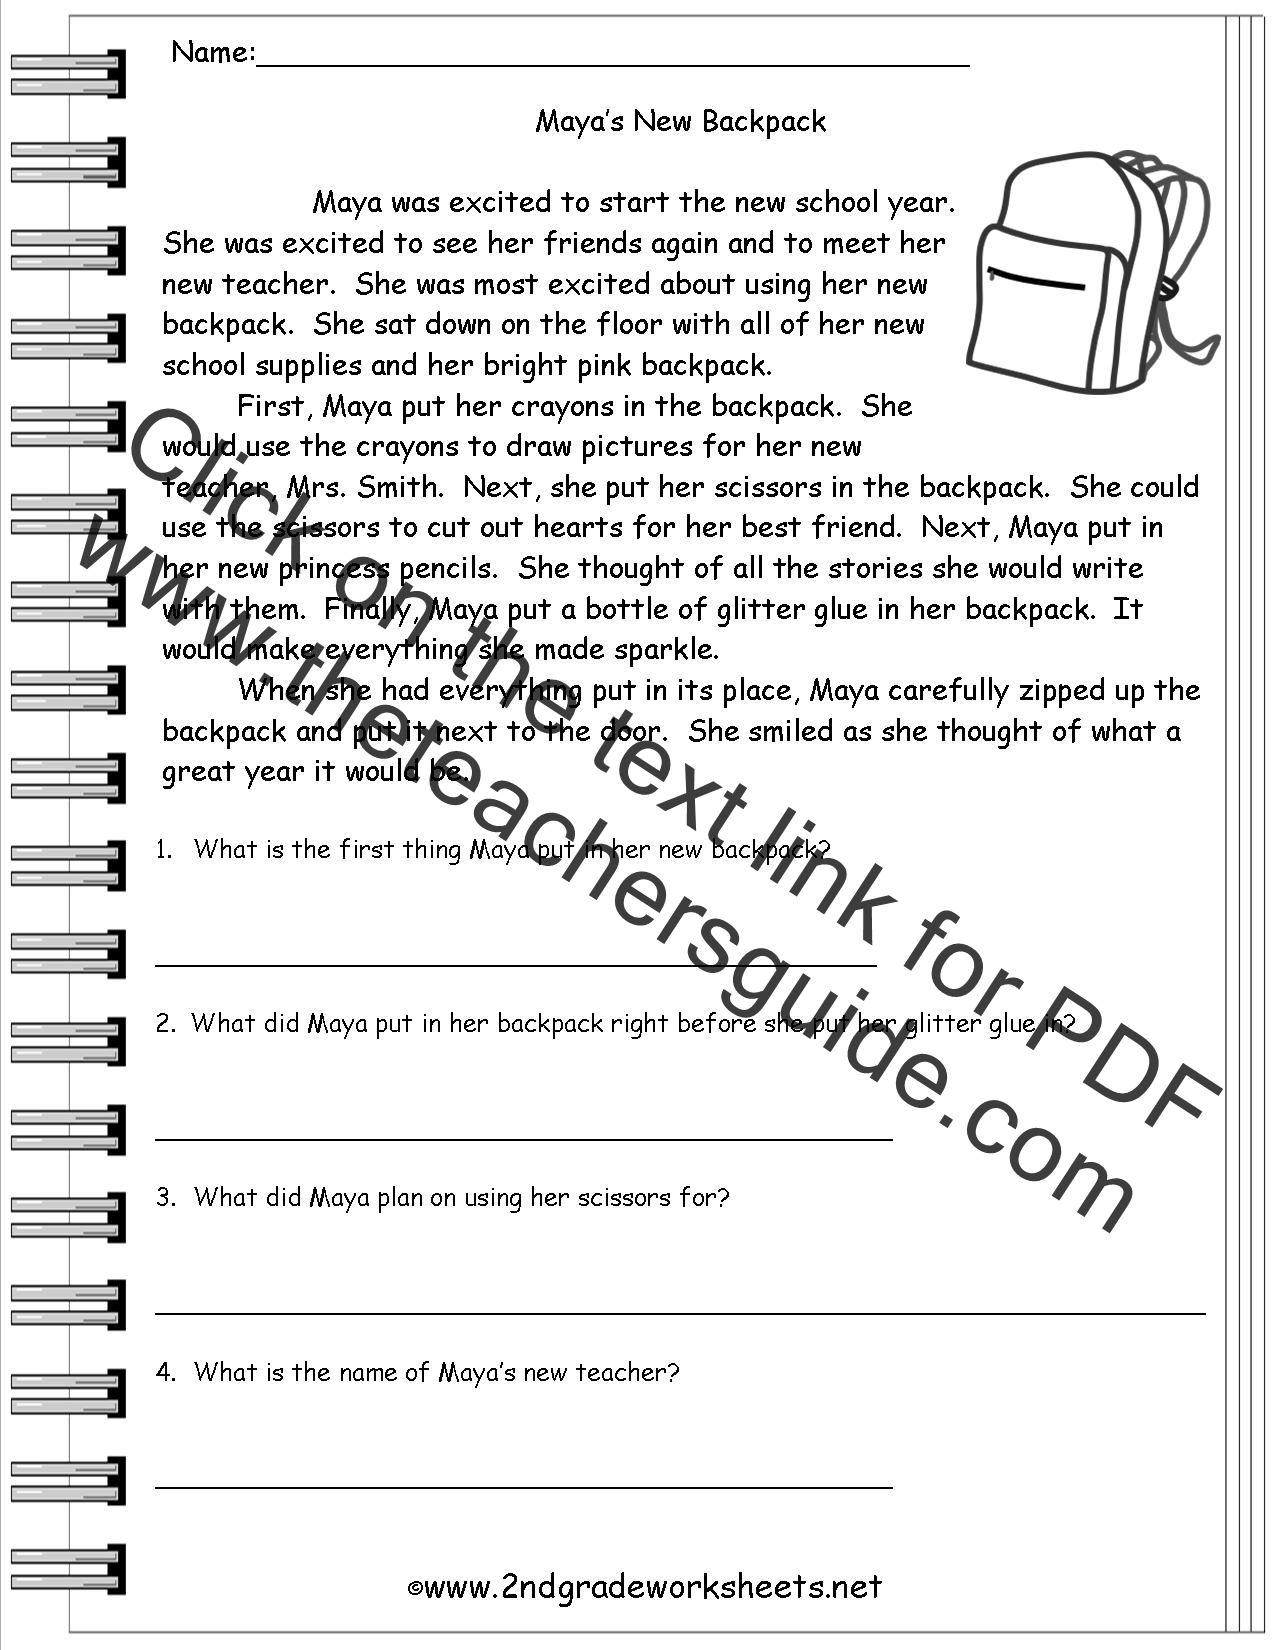 Worksheets Free Reading Worksheets For 4th Grade reading worksheeets literature worksheets